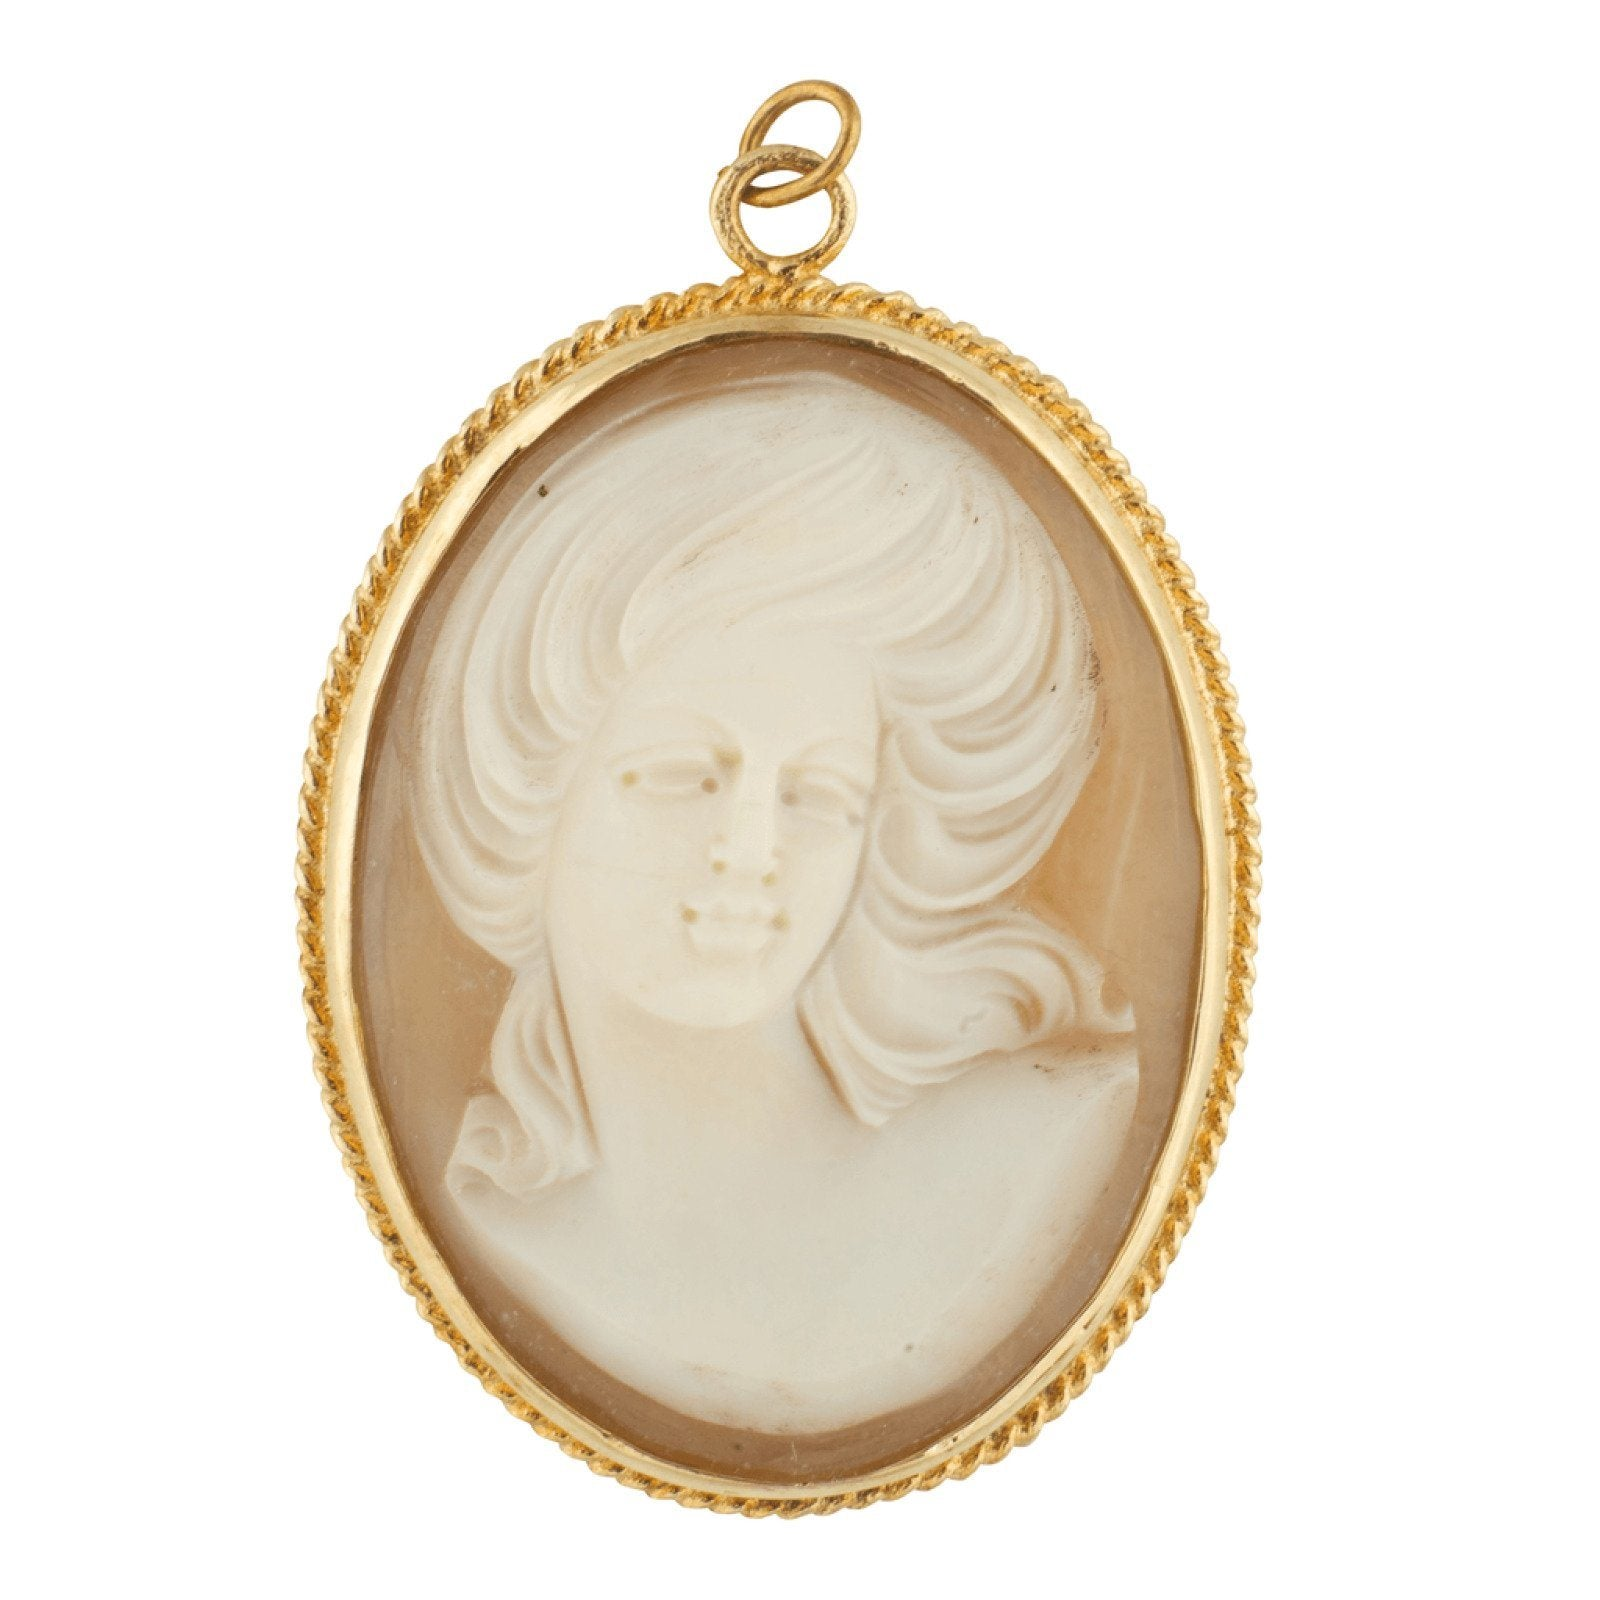 Antique cameo pendant oliver jewellery antique cameo pendant charms pendants aloadofball Choice Image